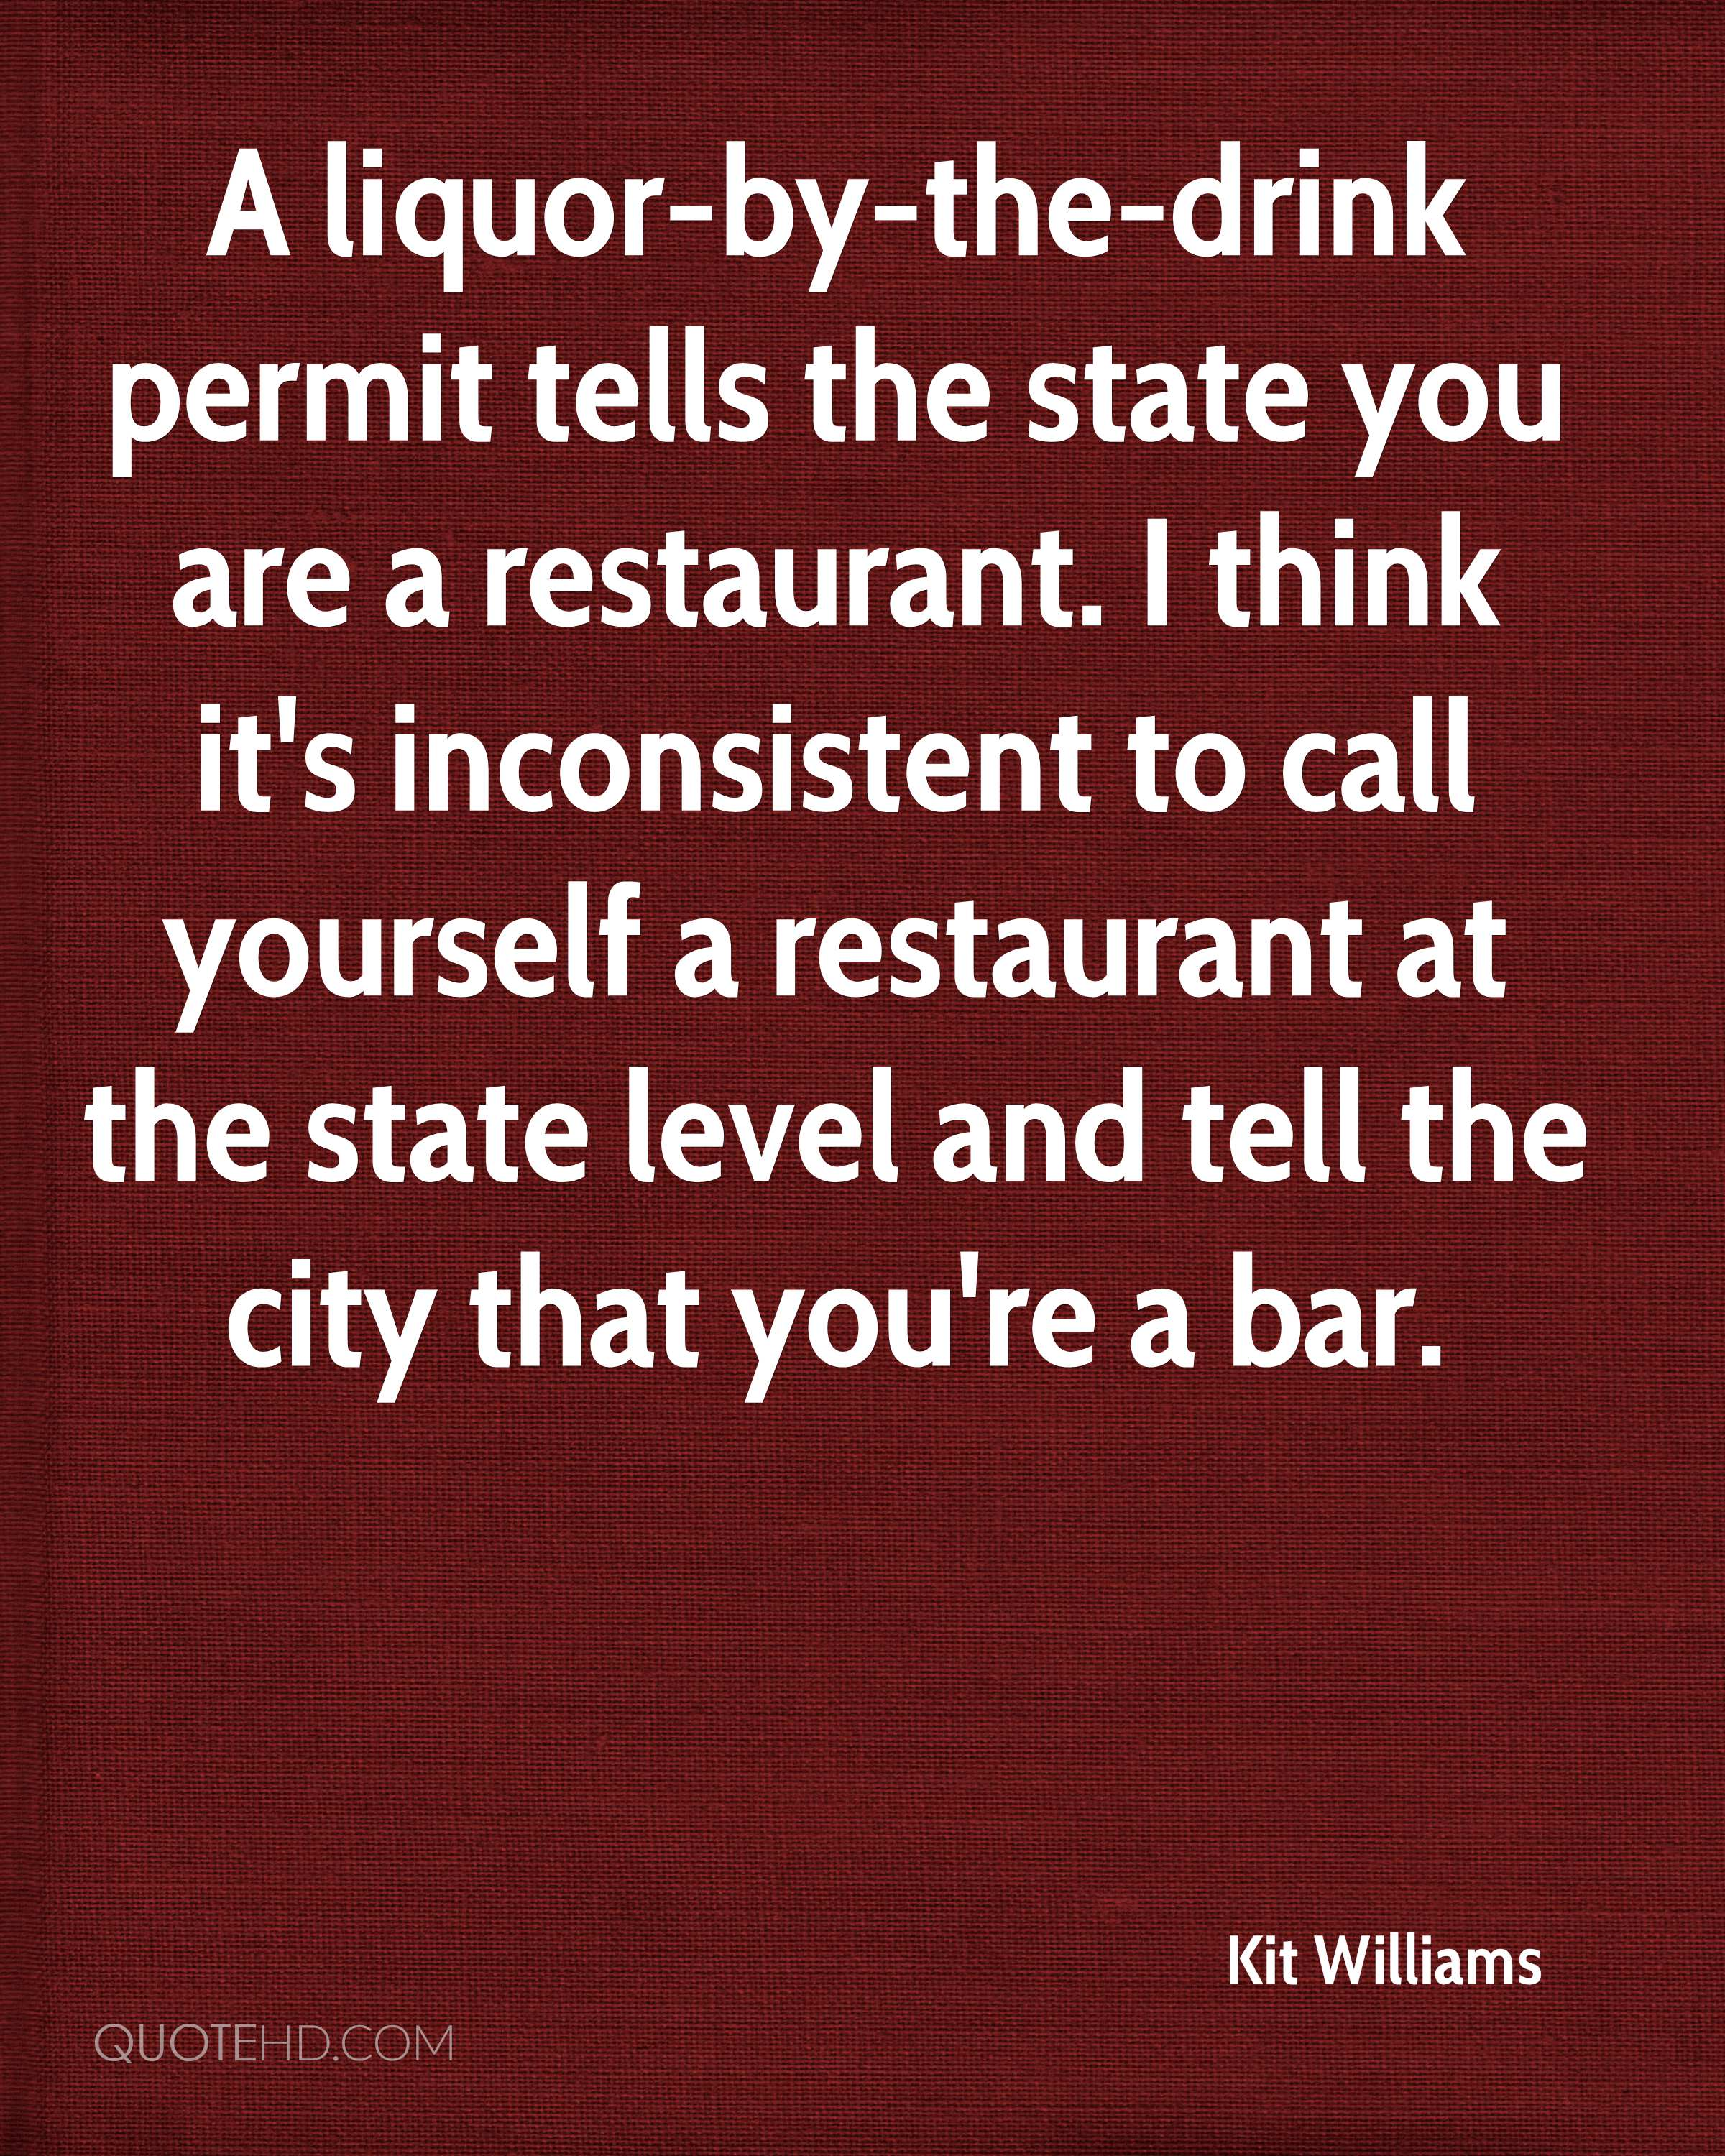 A liquor-by-the-drink permit tells the state you are a restaurant. I think it's inconsistent to call yourself a restaurant at the state level and tell the city that you're a bar.